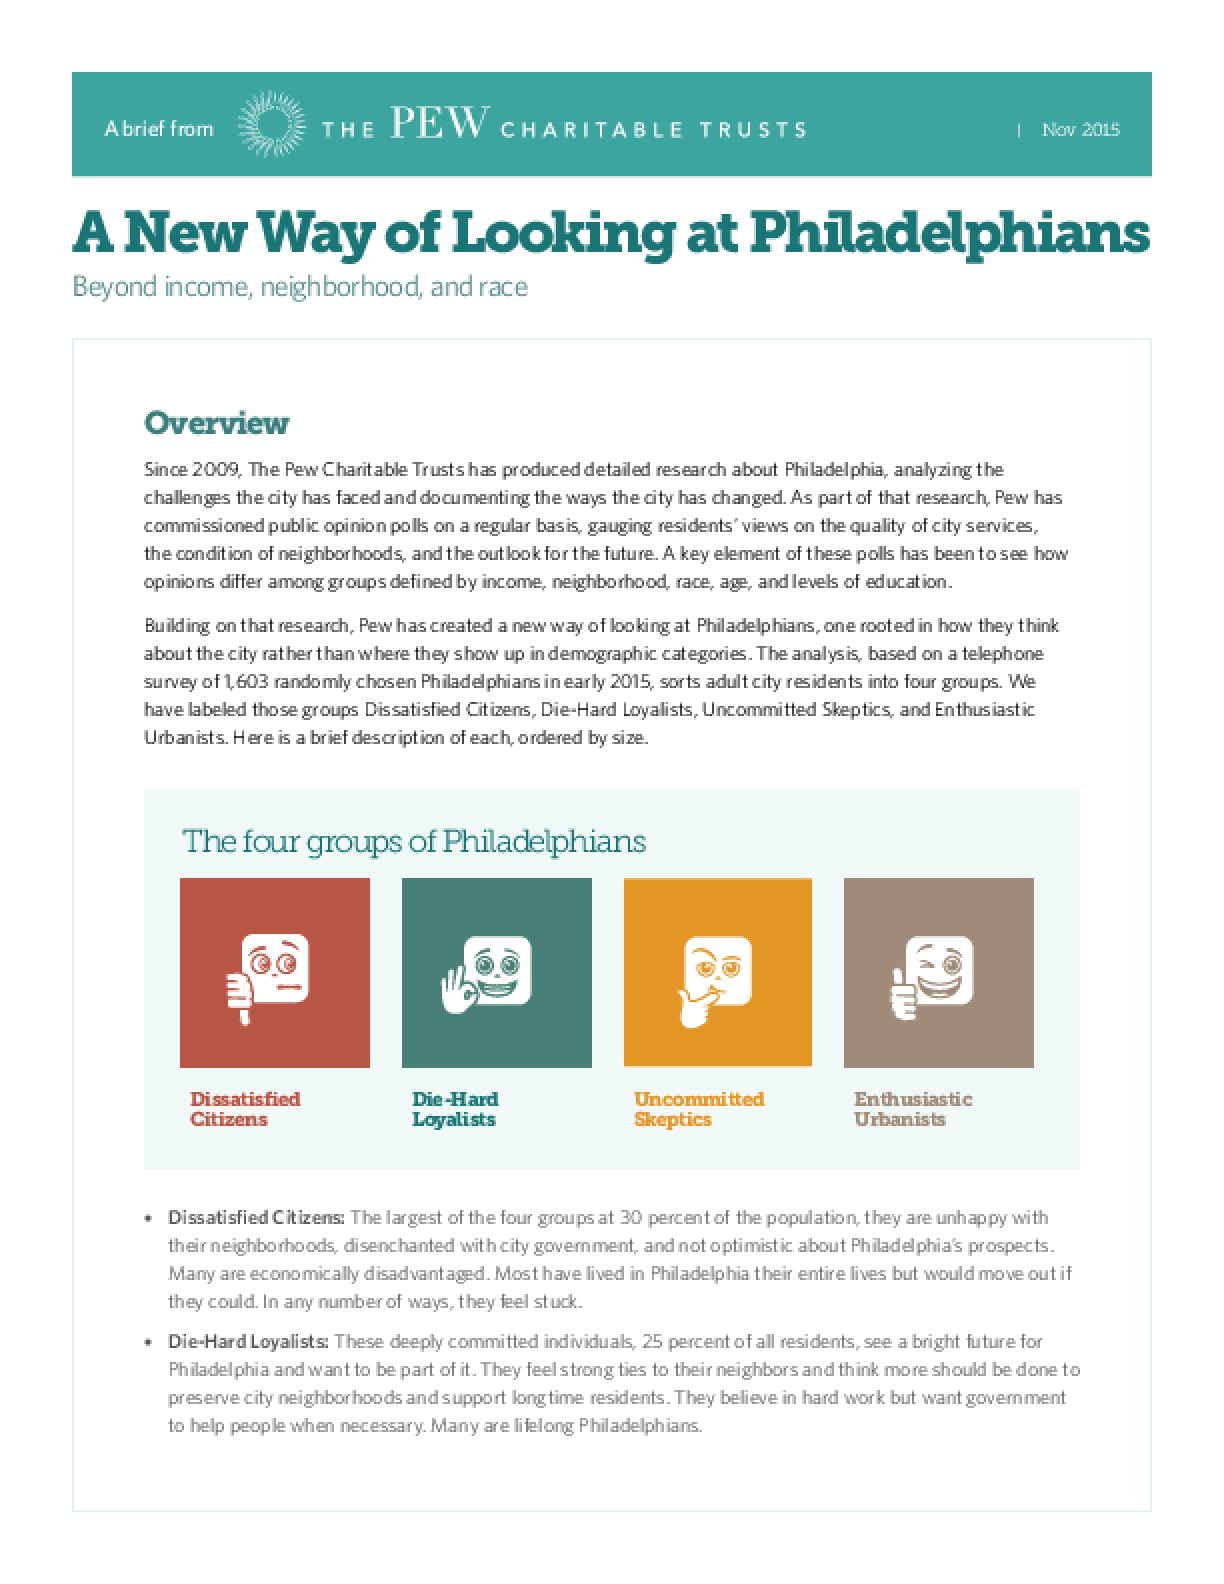 A New Way of Looking at Philadelphians